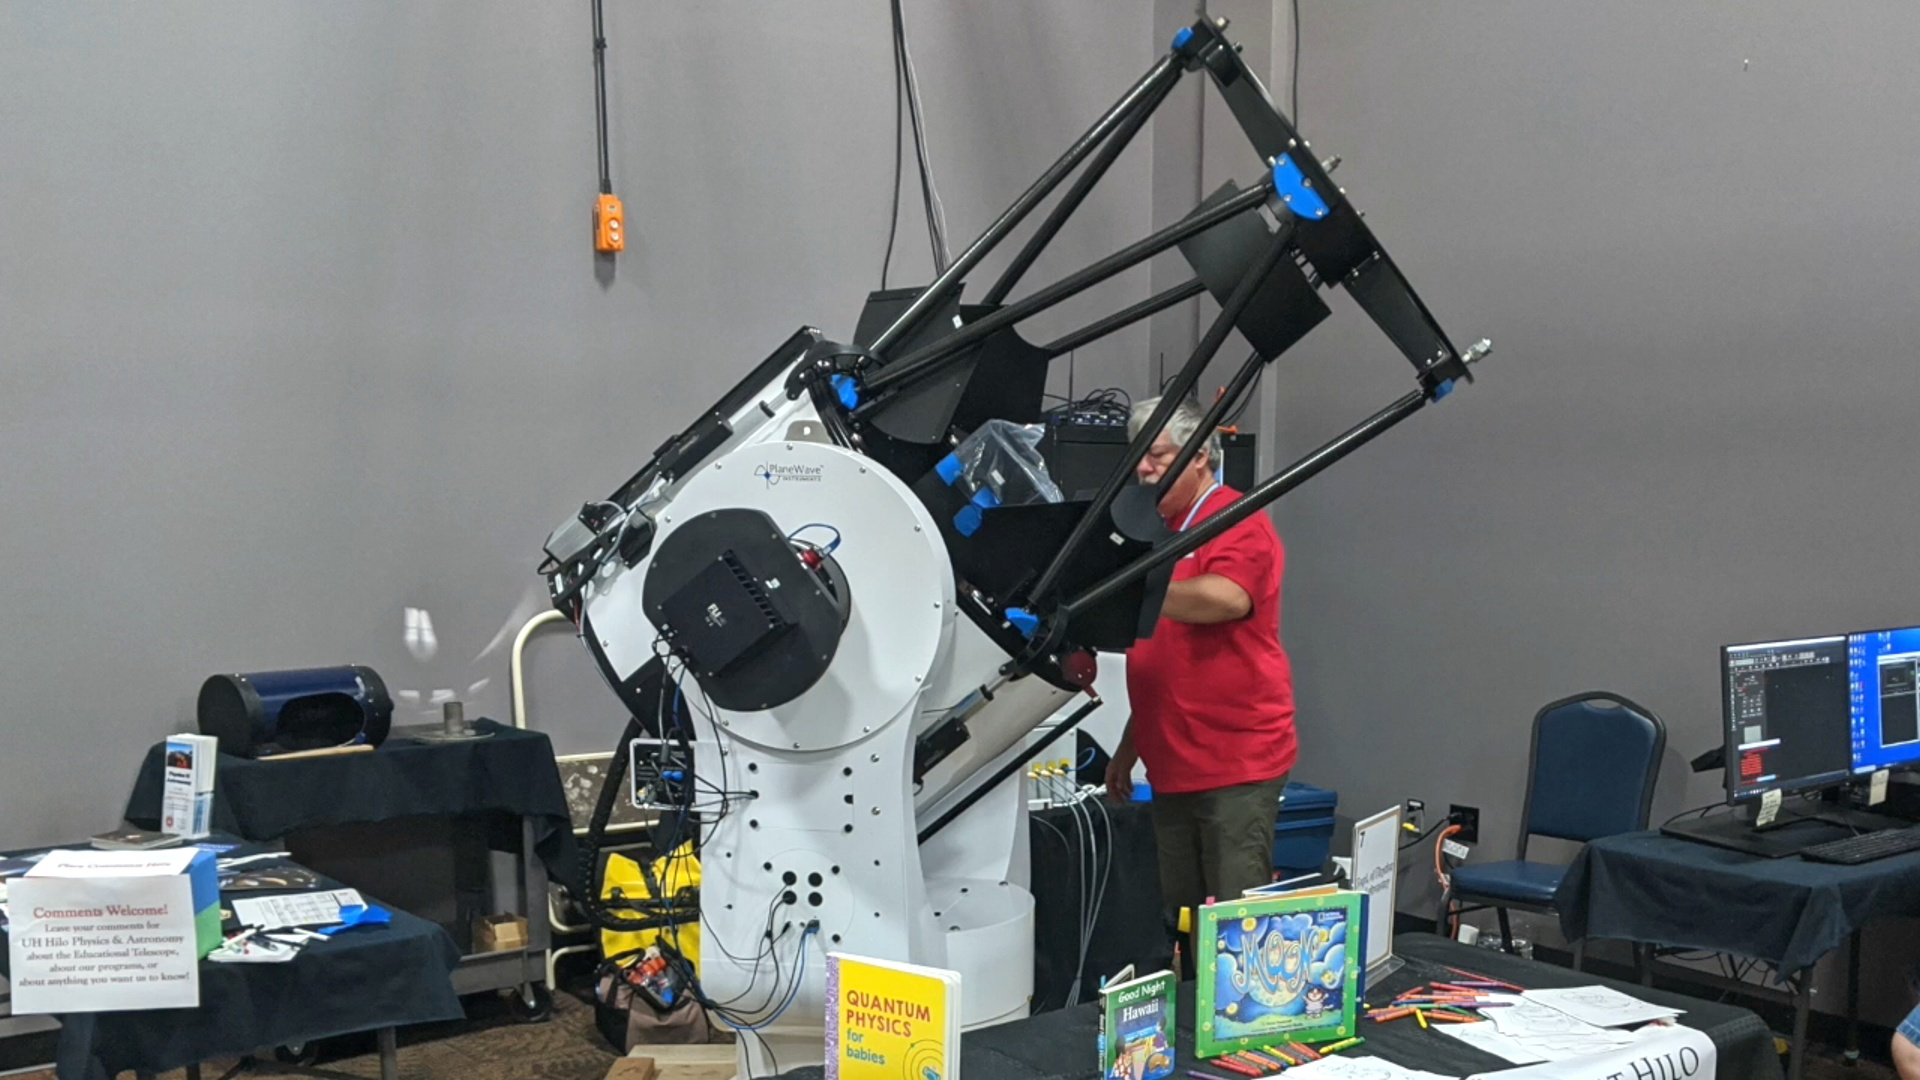 Man working on telescope in lab.